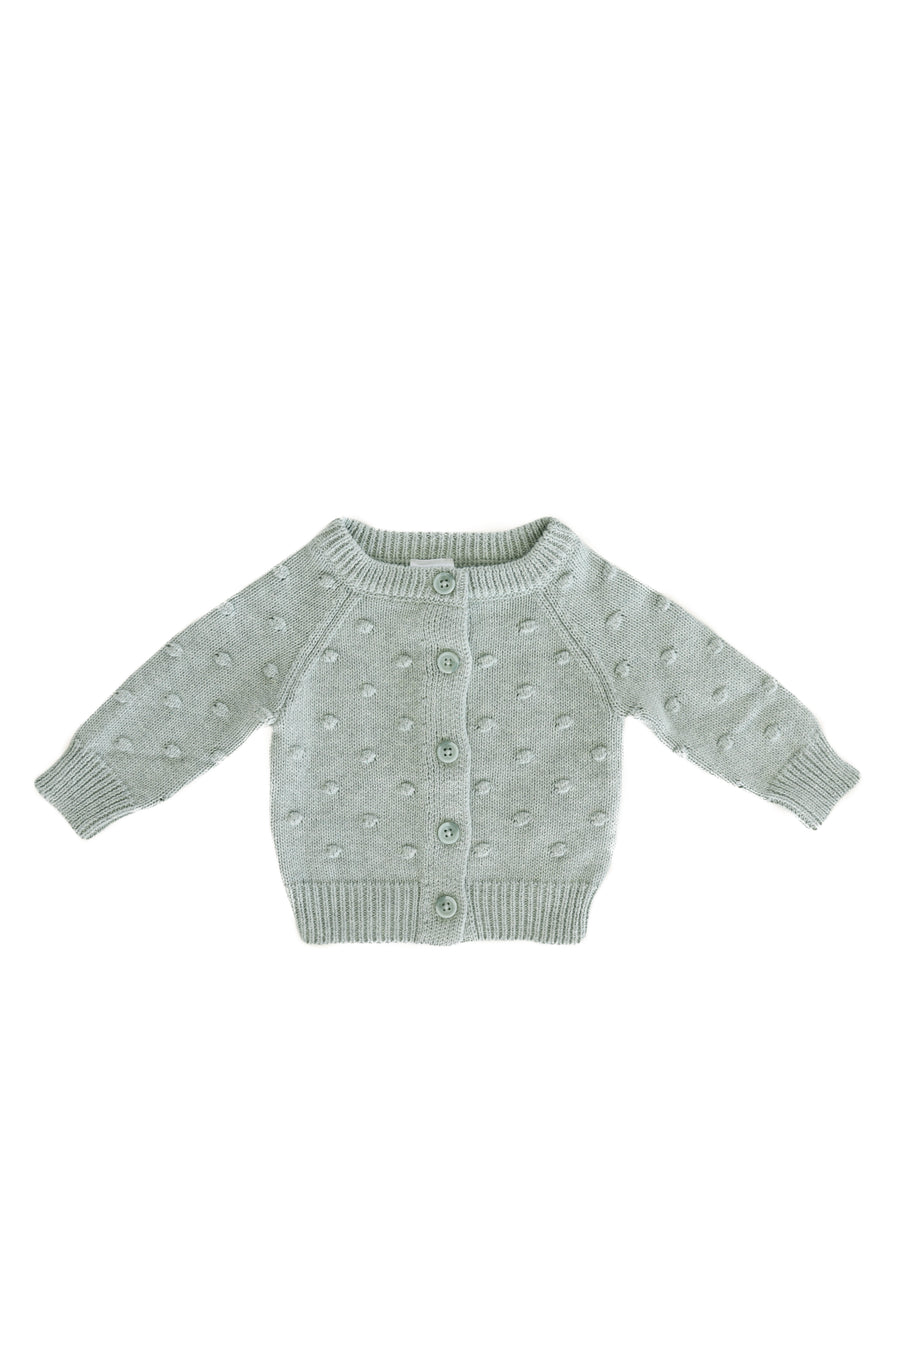 Dotty Cardigan | Seabreeze